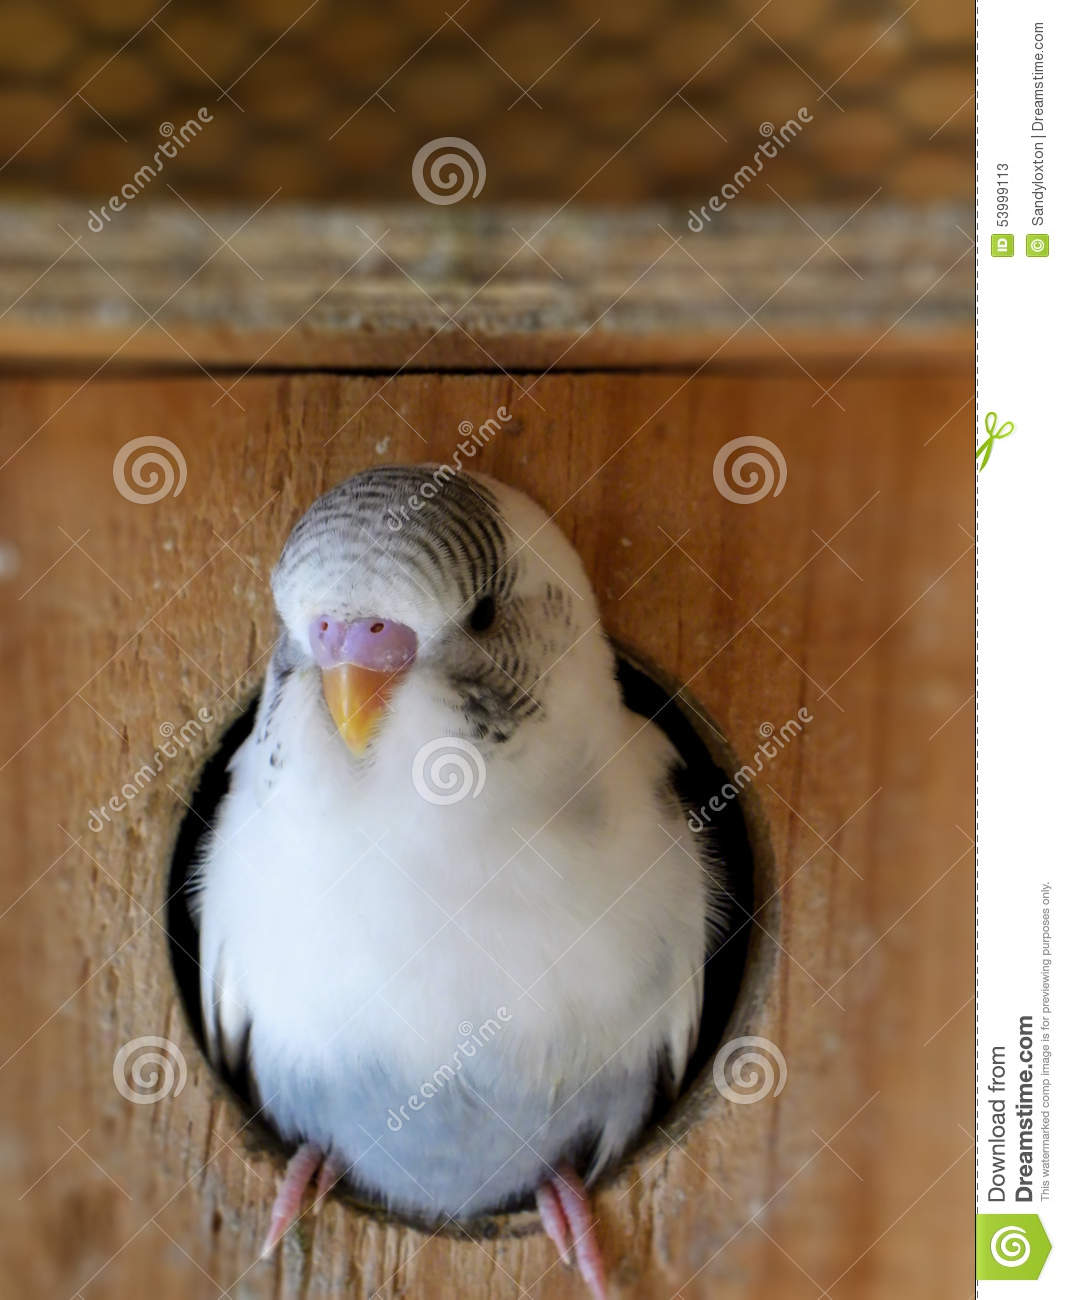 Grey recessive pied budgie getting ready to leave the nest box